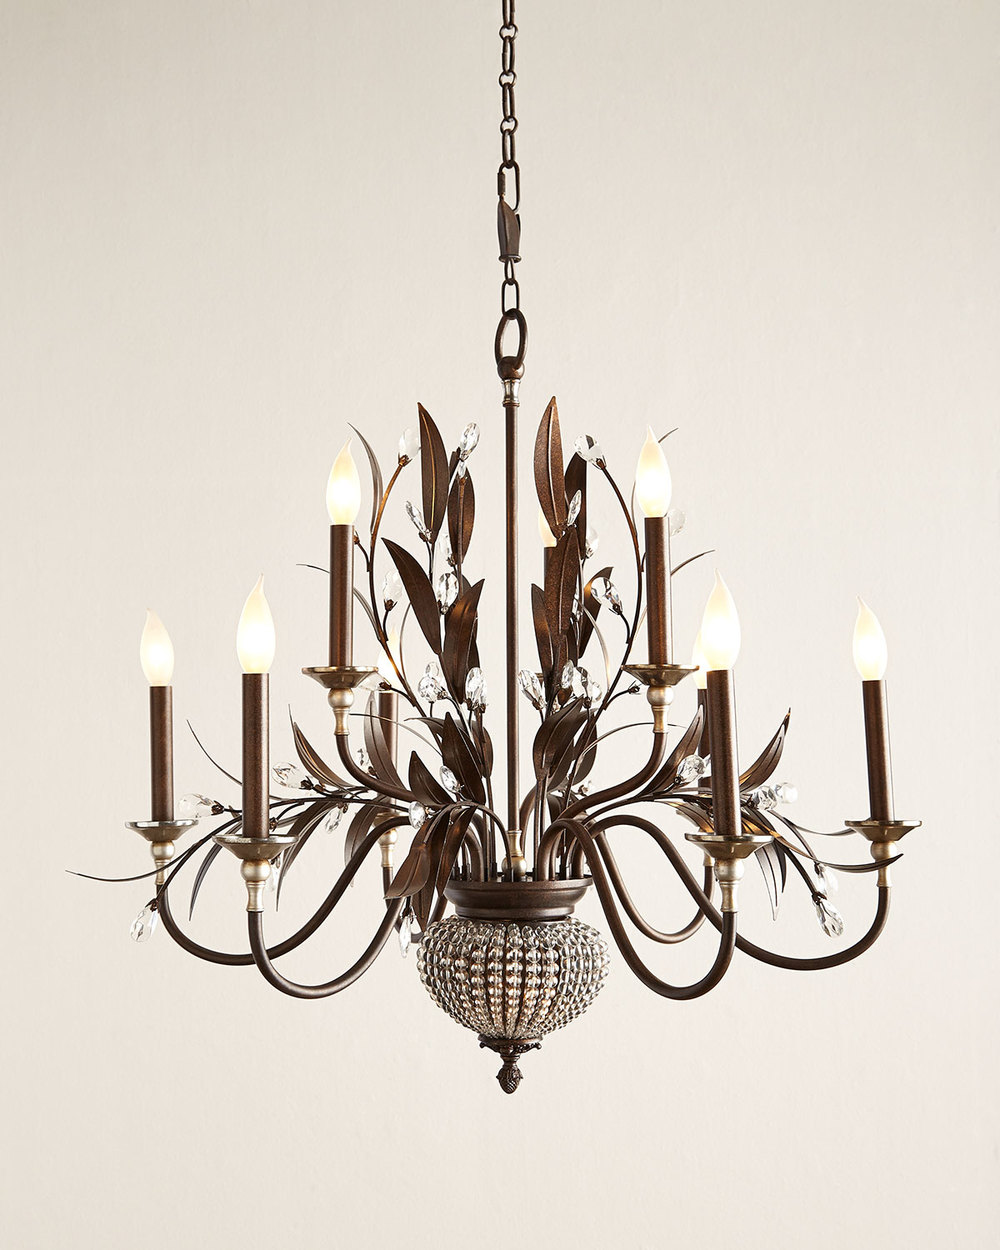 Awesome As a counterpoint to the wild zebra stripes I um loving this vintage inspired chandelier In the style of Italian tole this beautiful light fixture will